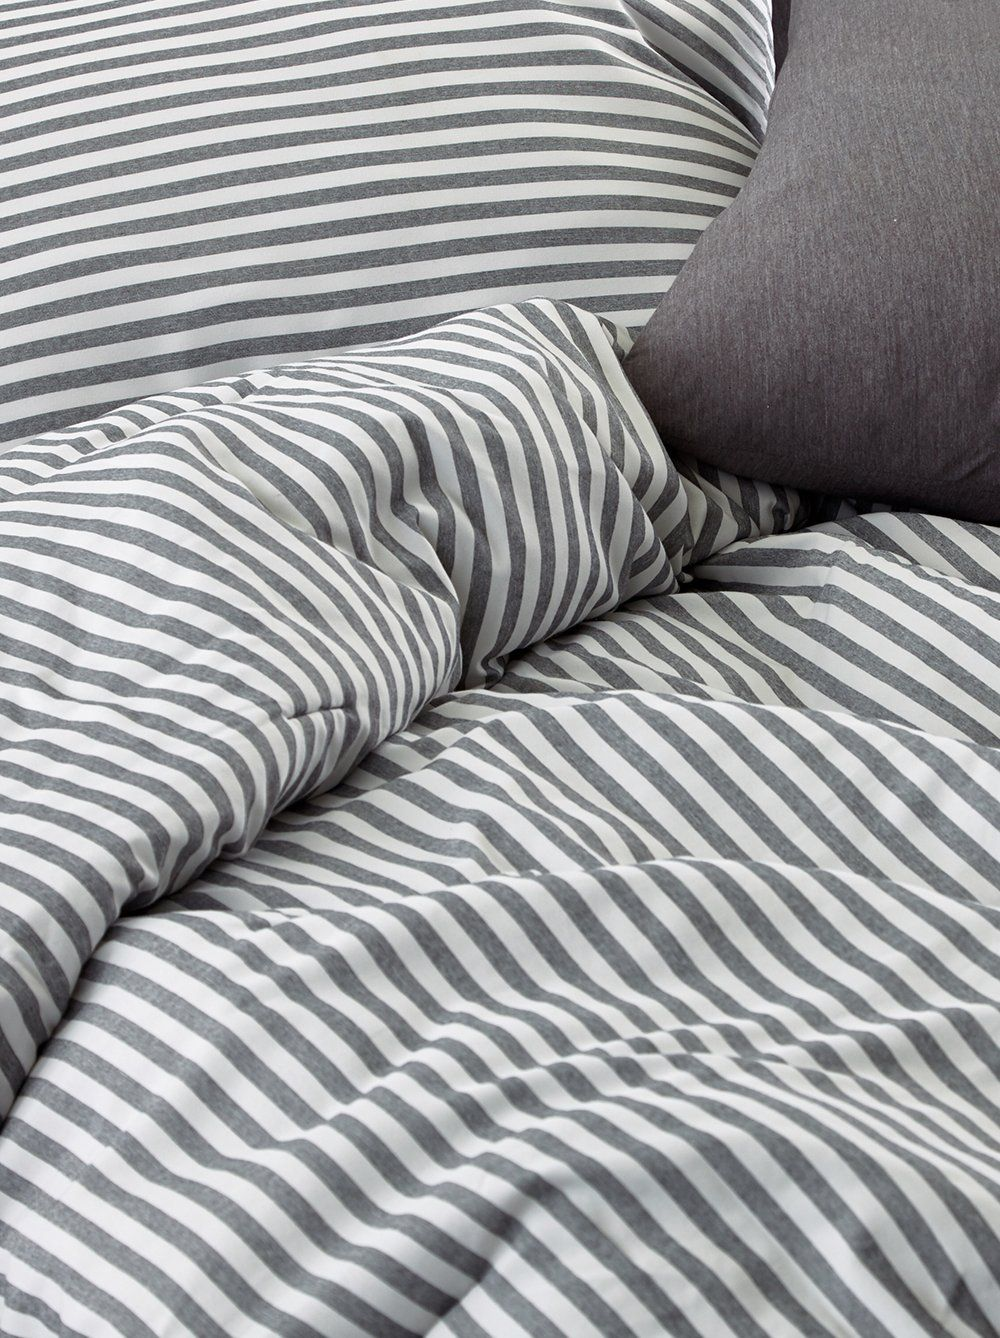 Just My Stripe Sleep Comforter For Dorms Apartments Roomify Comforters Super Soft Comforter Photo Walls Bedroom